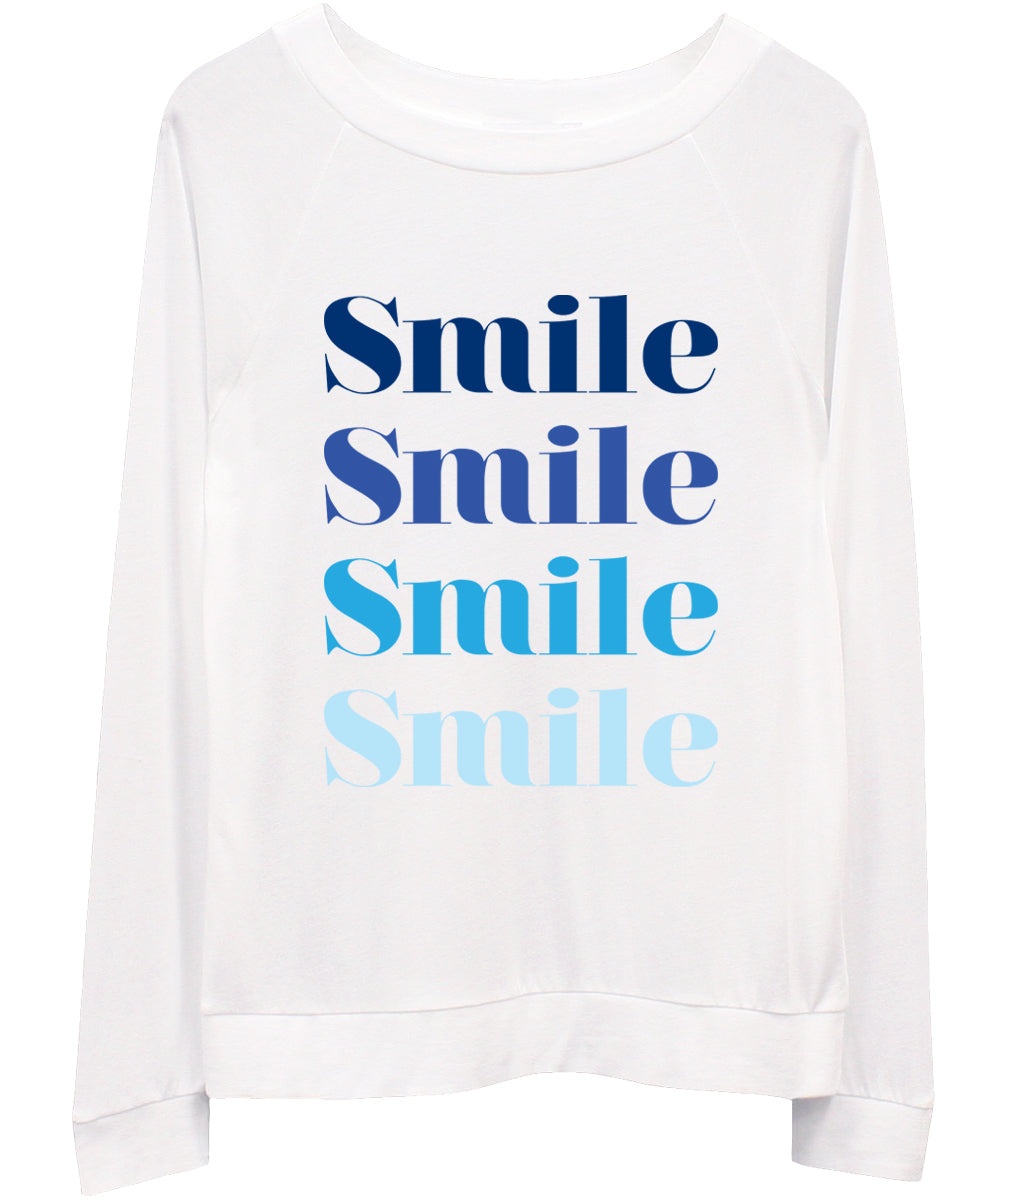 Candy - Long Sleeve Jersey  - Smile